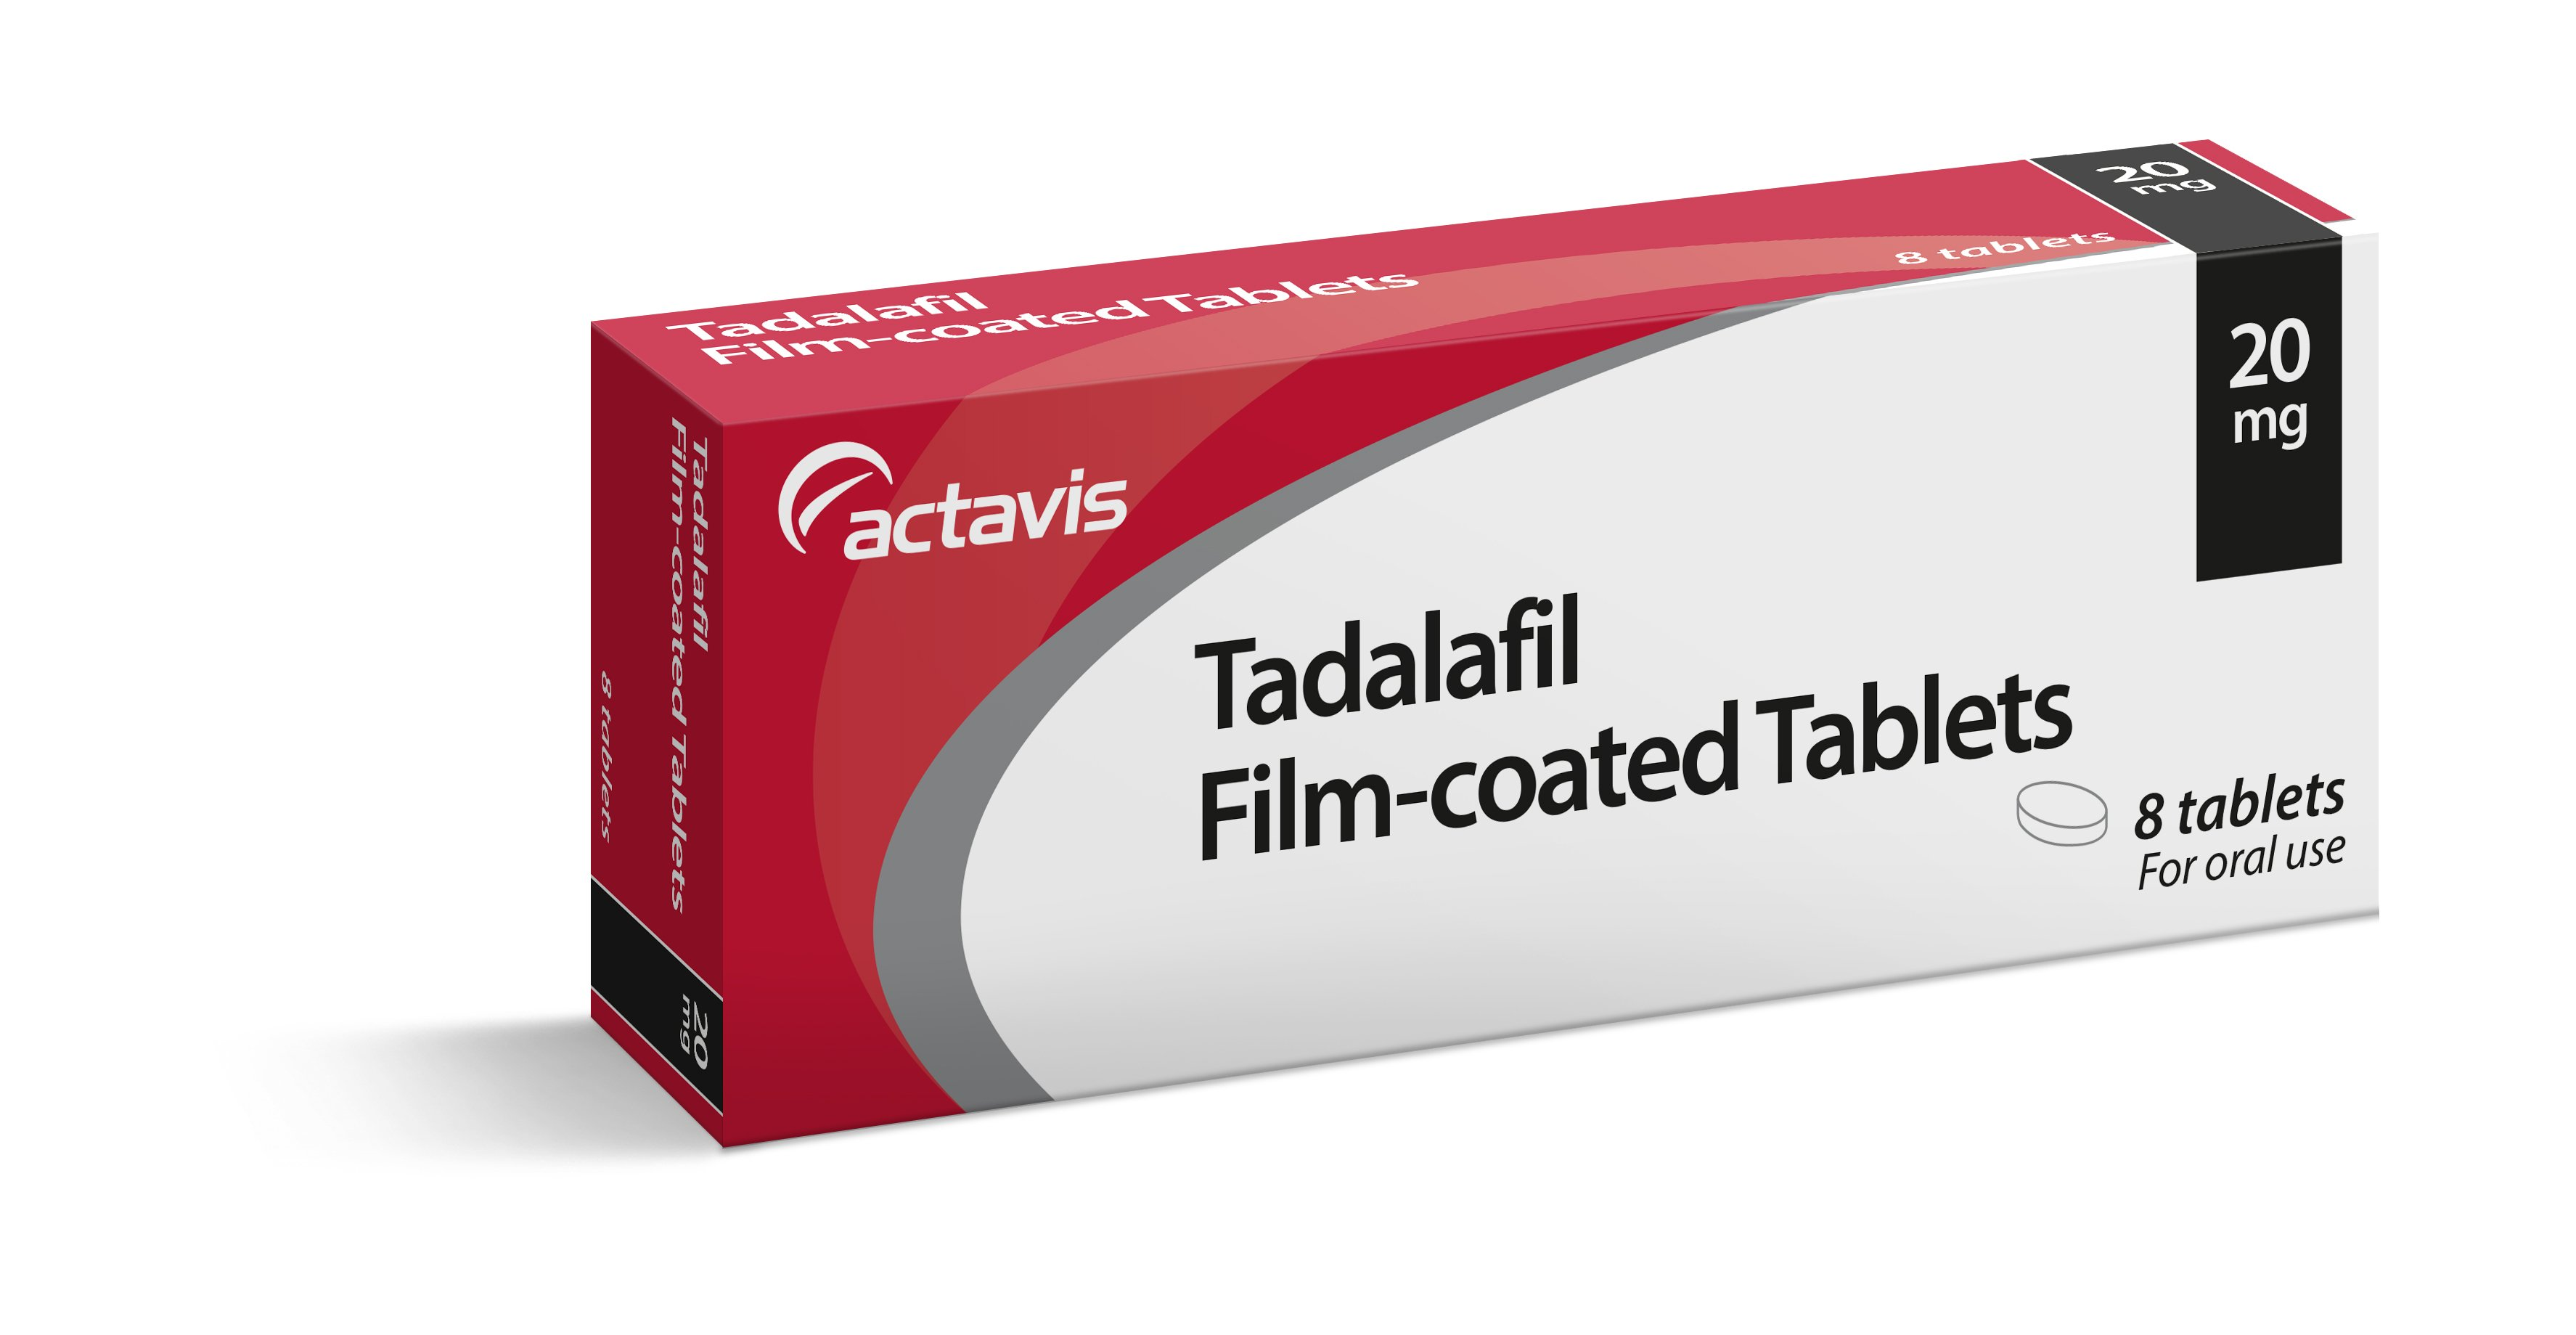 How often to take cialis 5mg